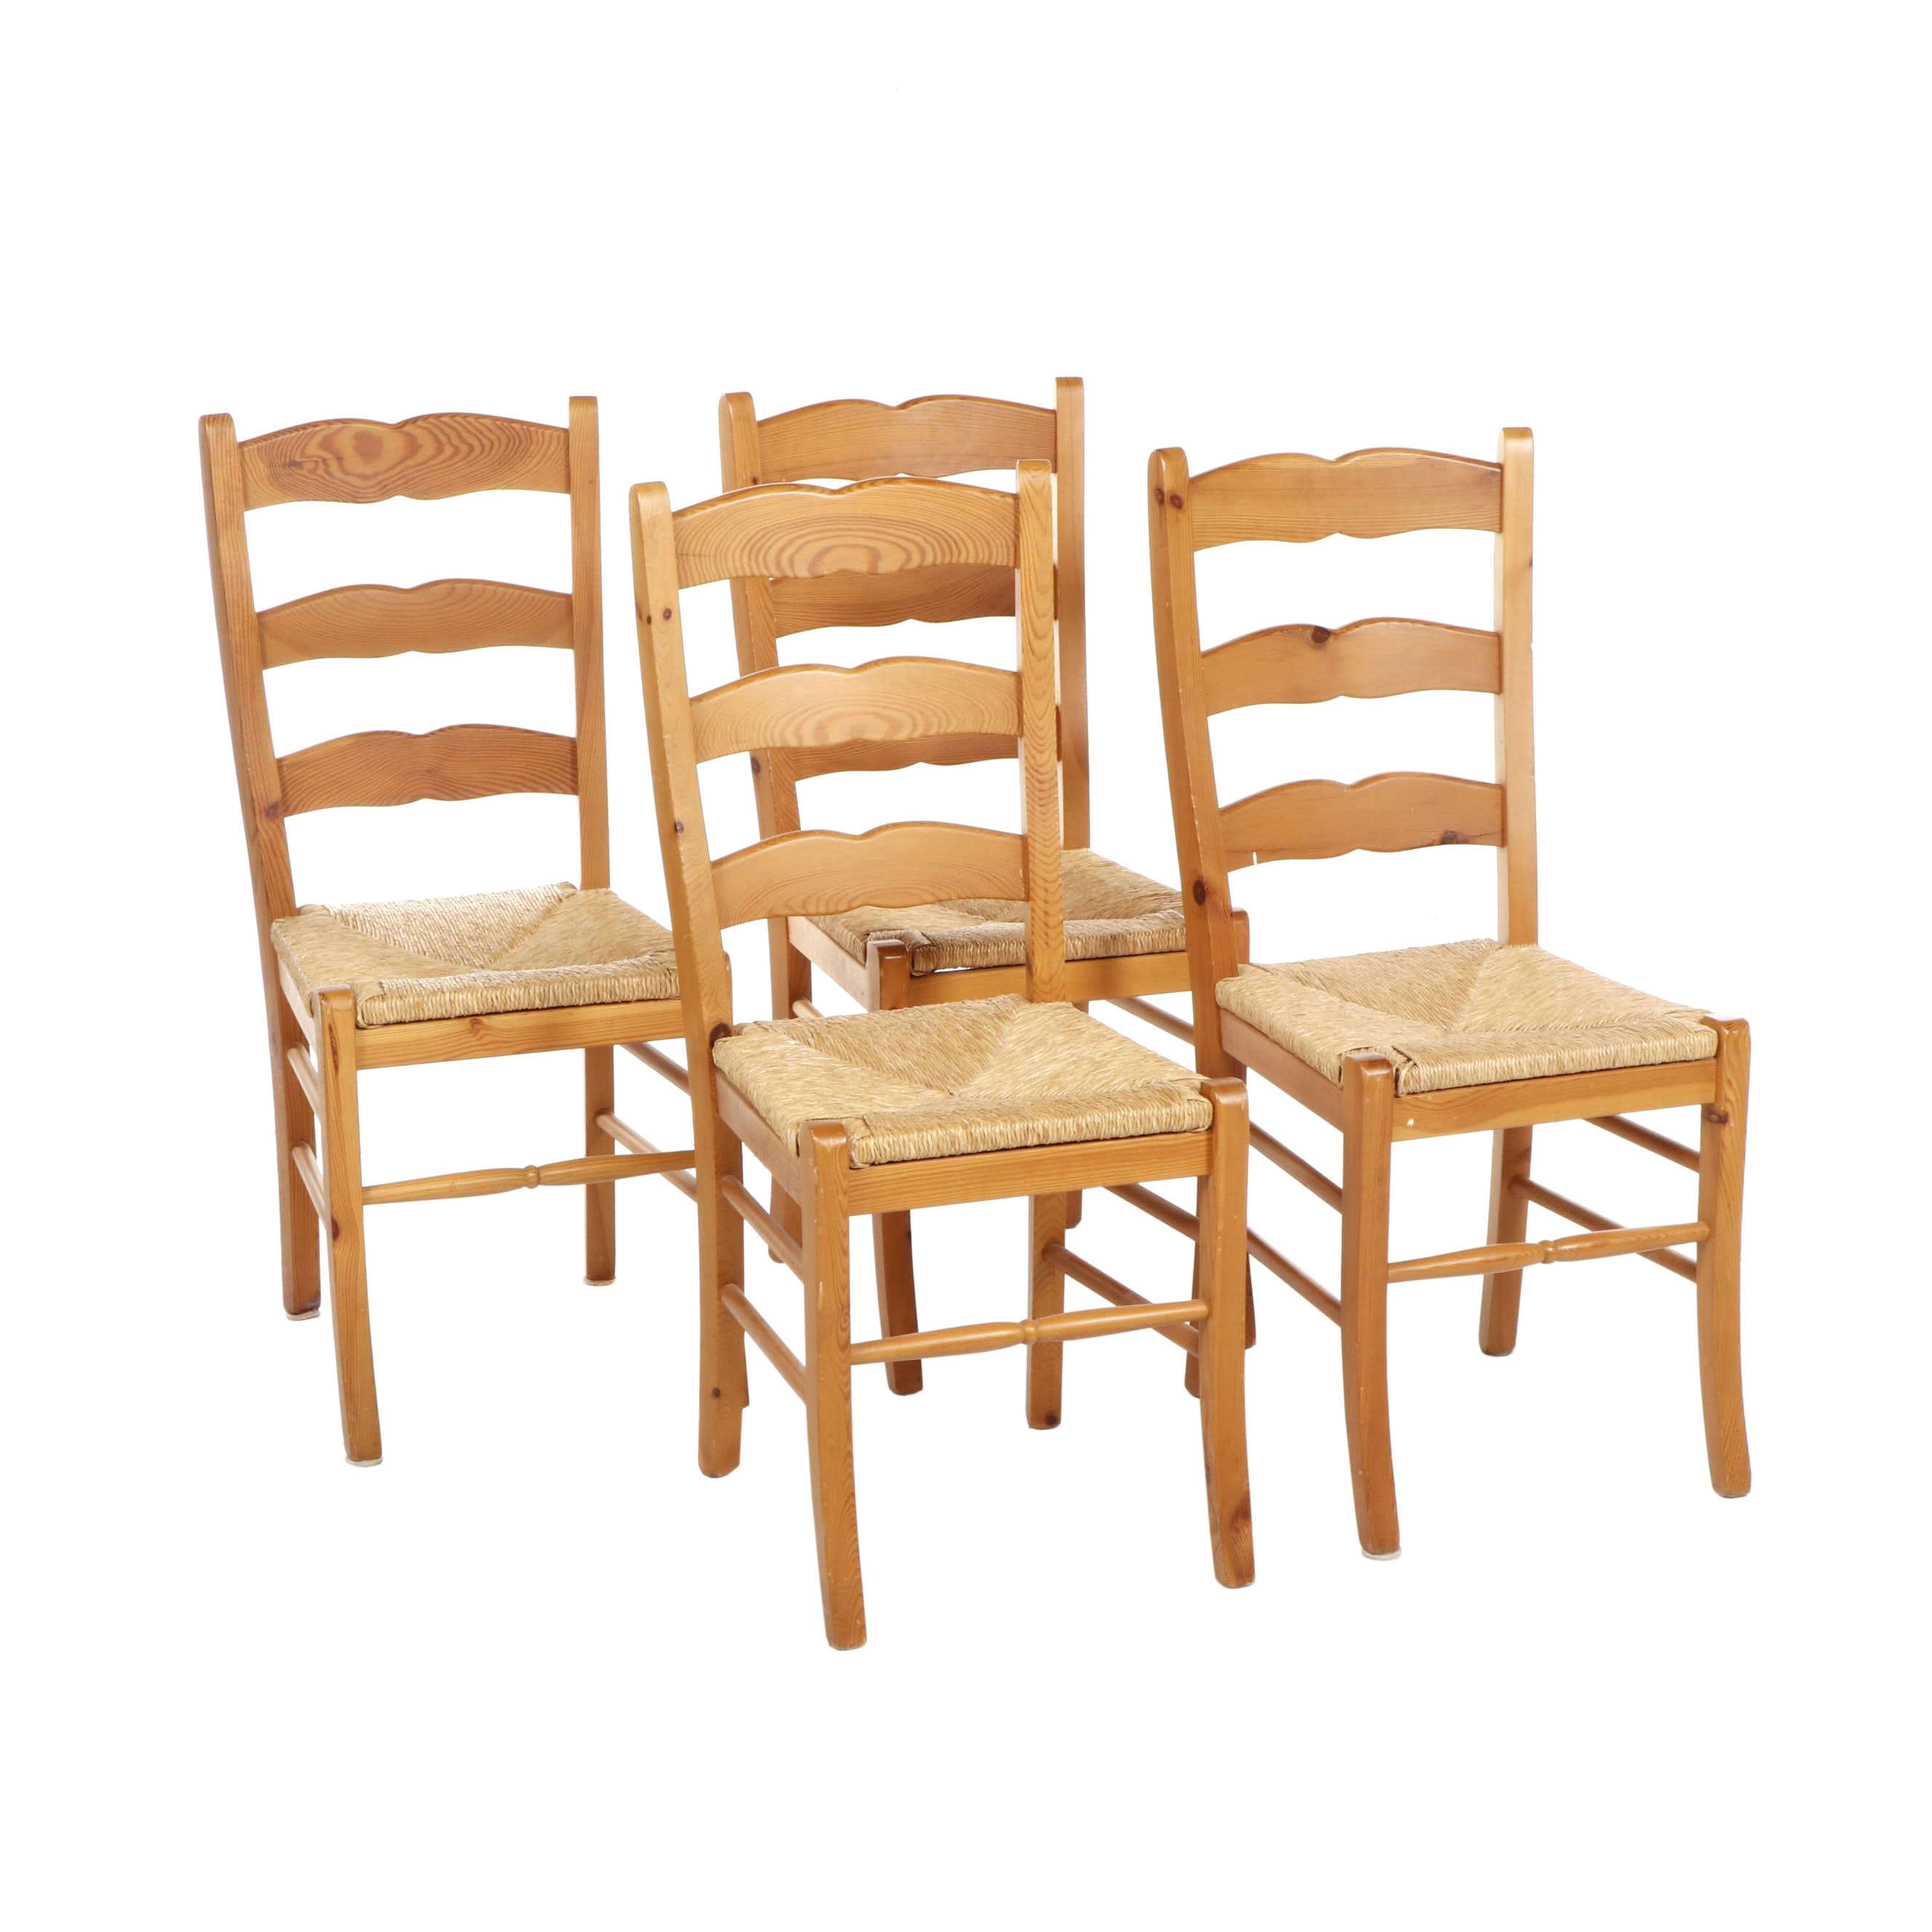 Four Oak Ladder Back Kitchen Chairs with Rush Seat